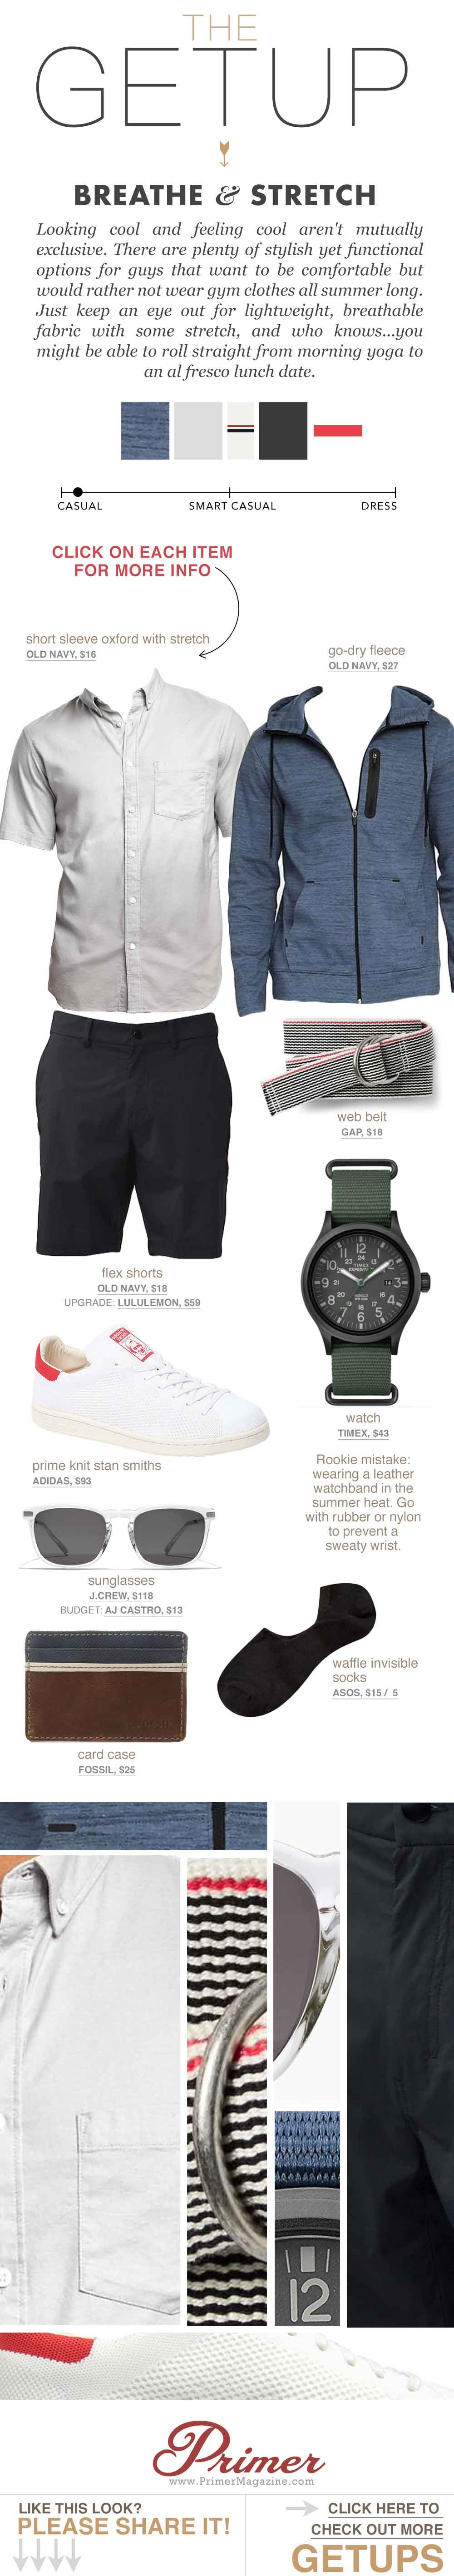 The Getup x Primer